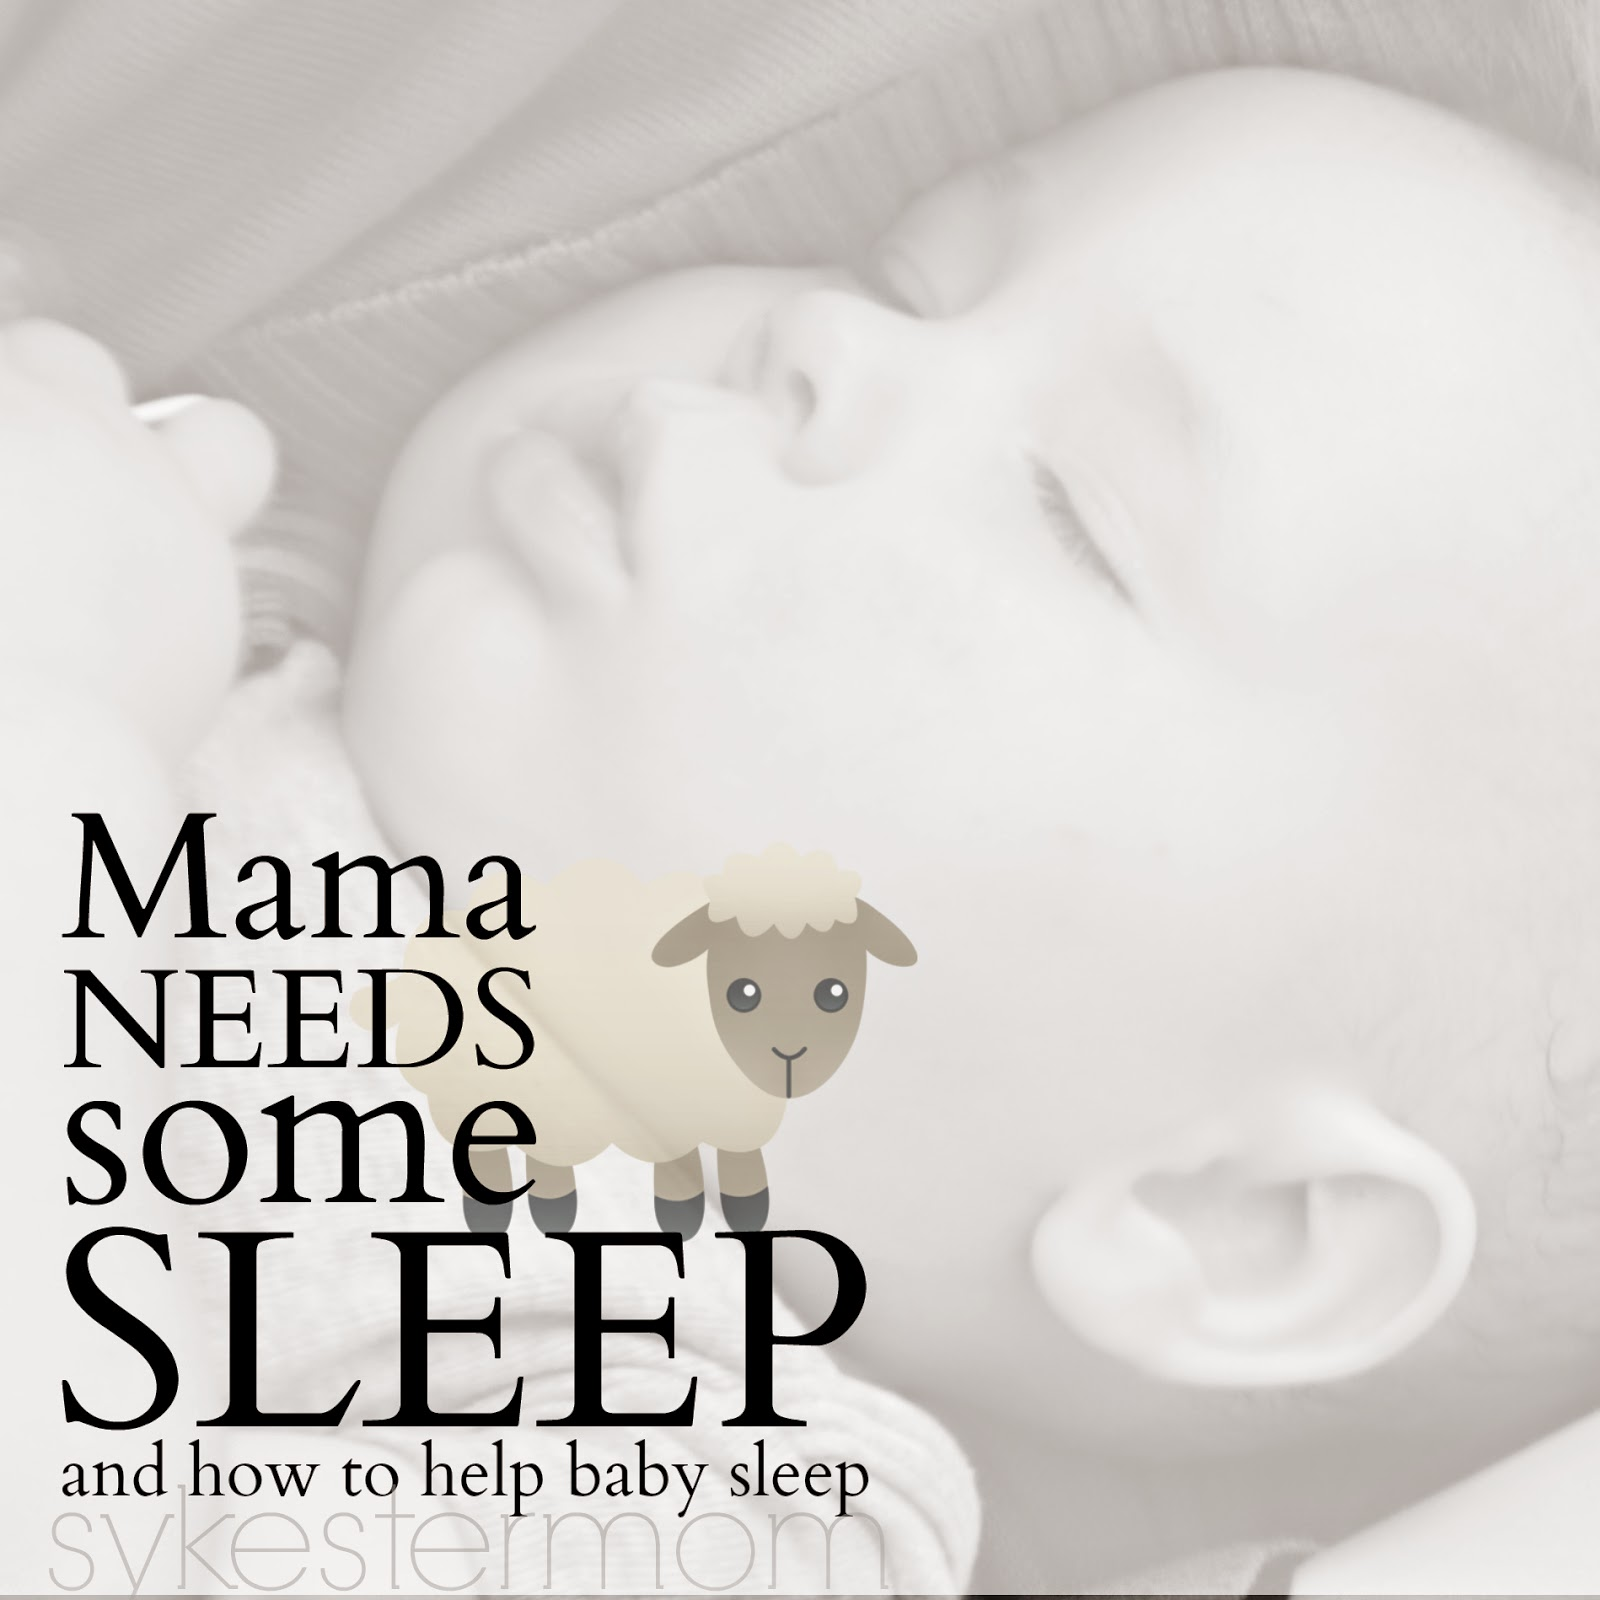 http://christisykes.myshaklee.com/us/en/shop/healthysolutions/sleep/product-_p_gentle-sleep-complexp